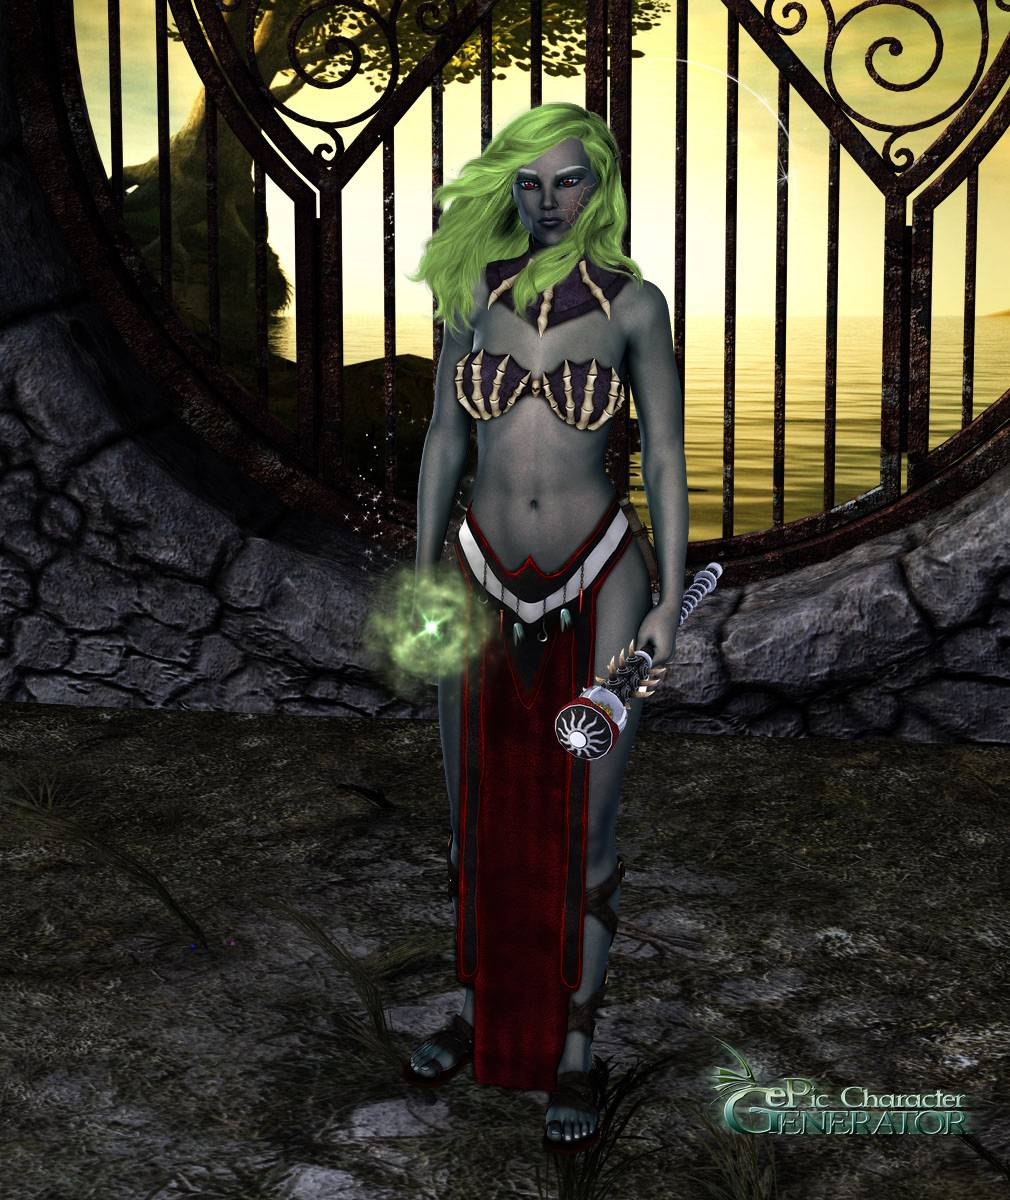 ePic Character Generator Season 2 Female Drow Spellcaster Screenshot 11